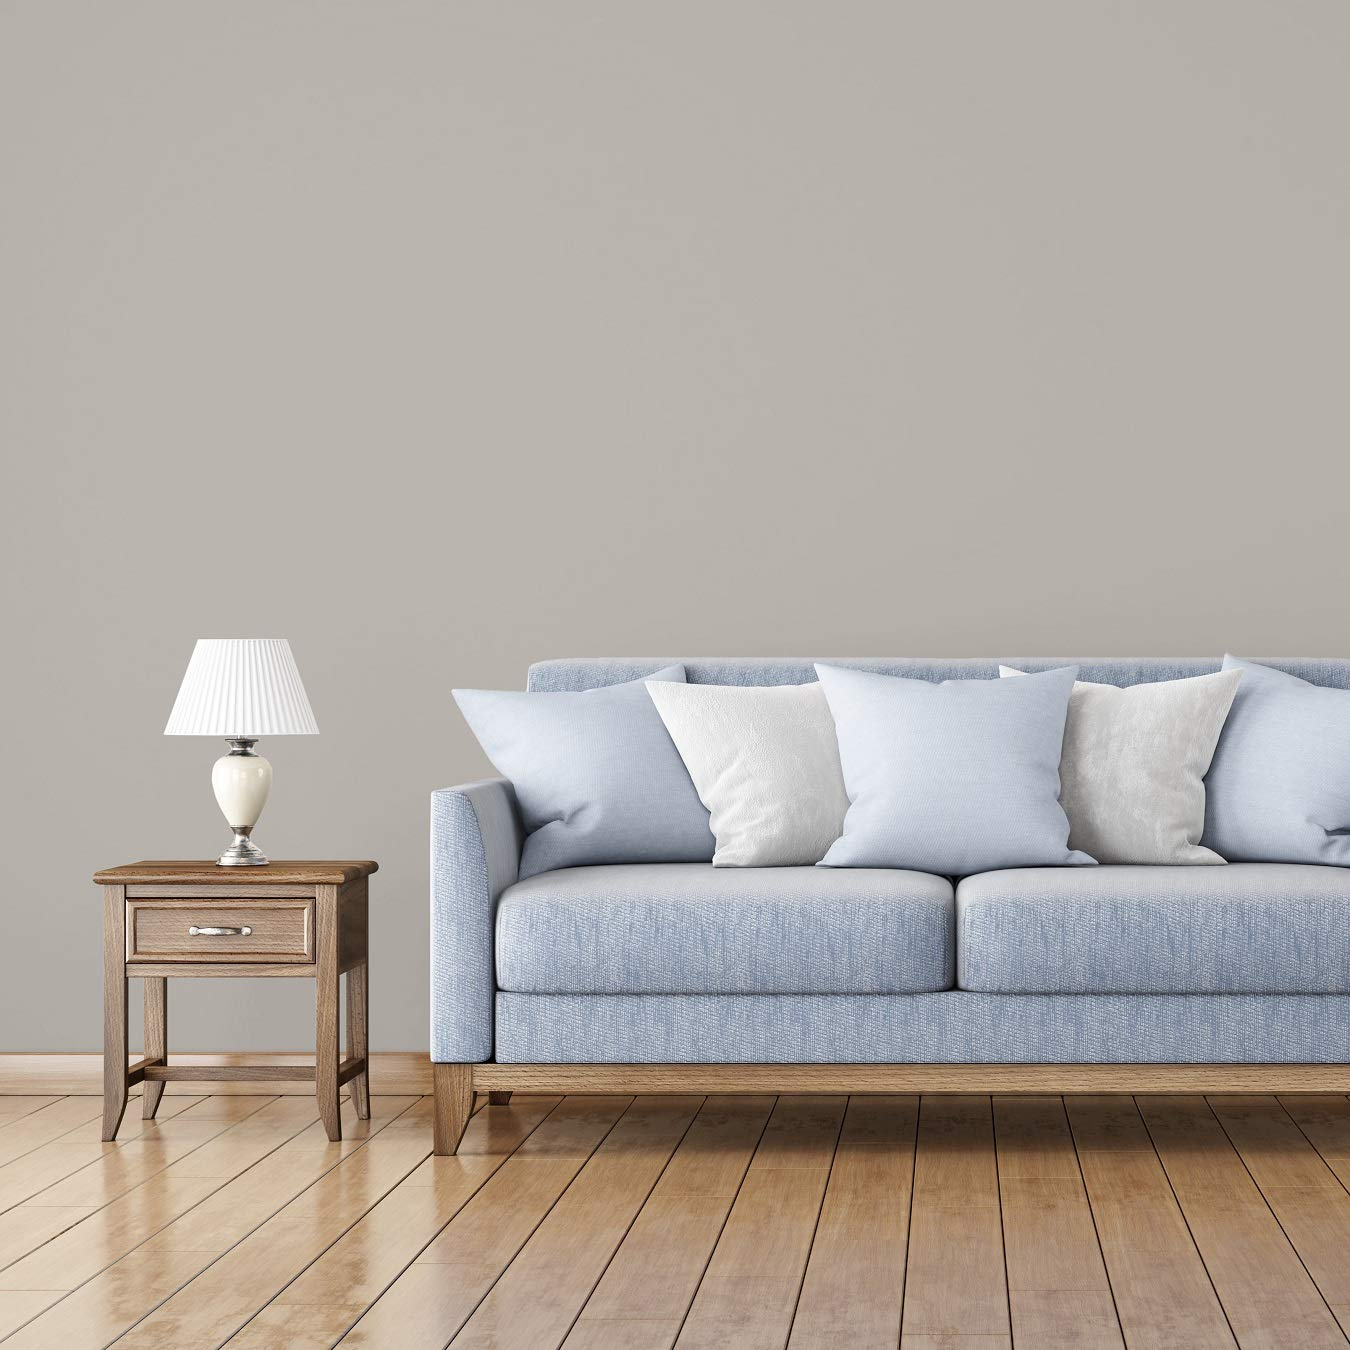 leather couch with lighter pillows and rug